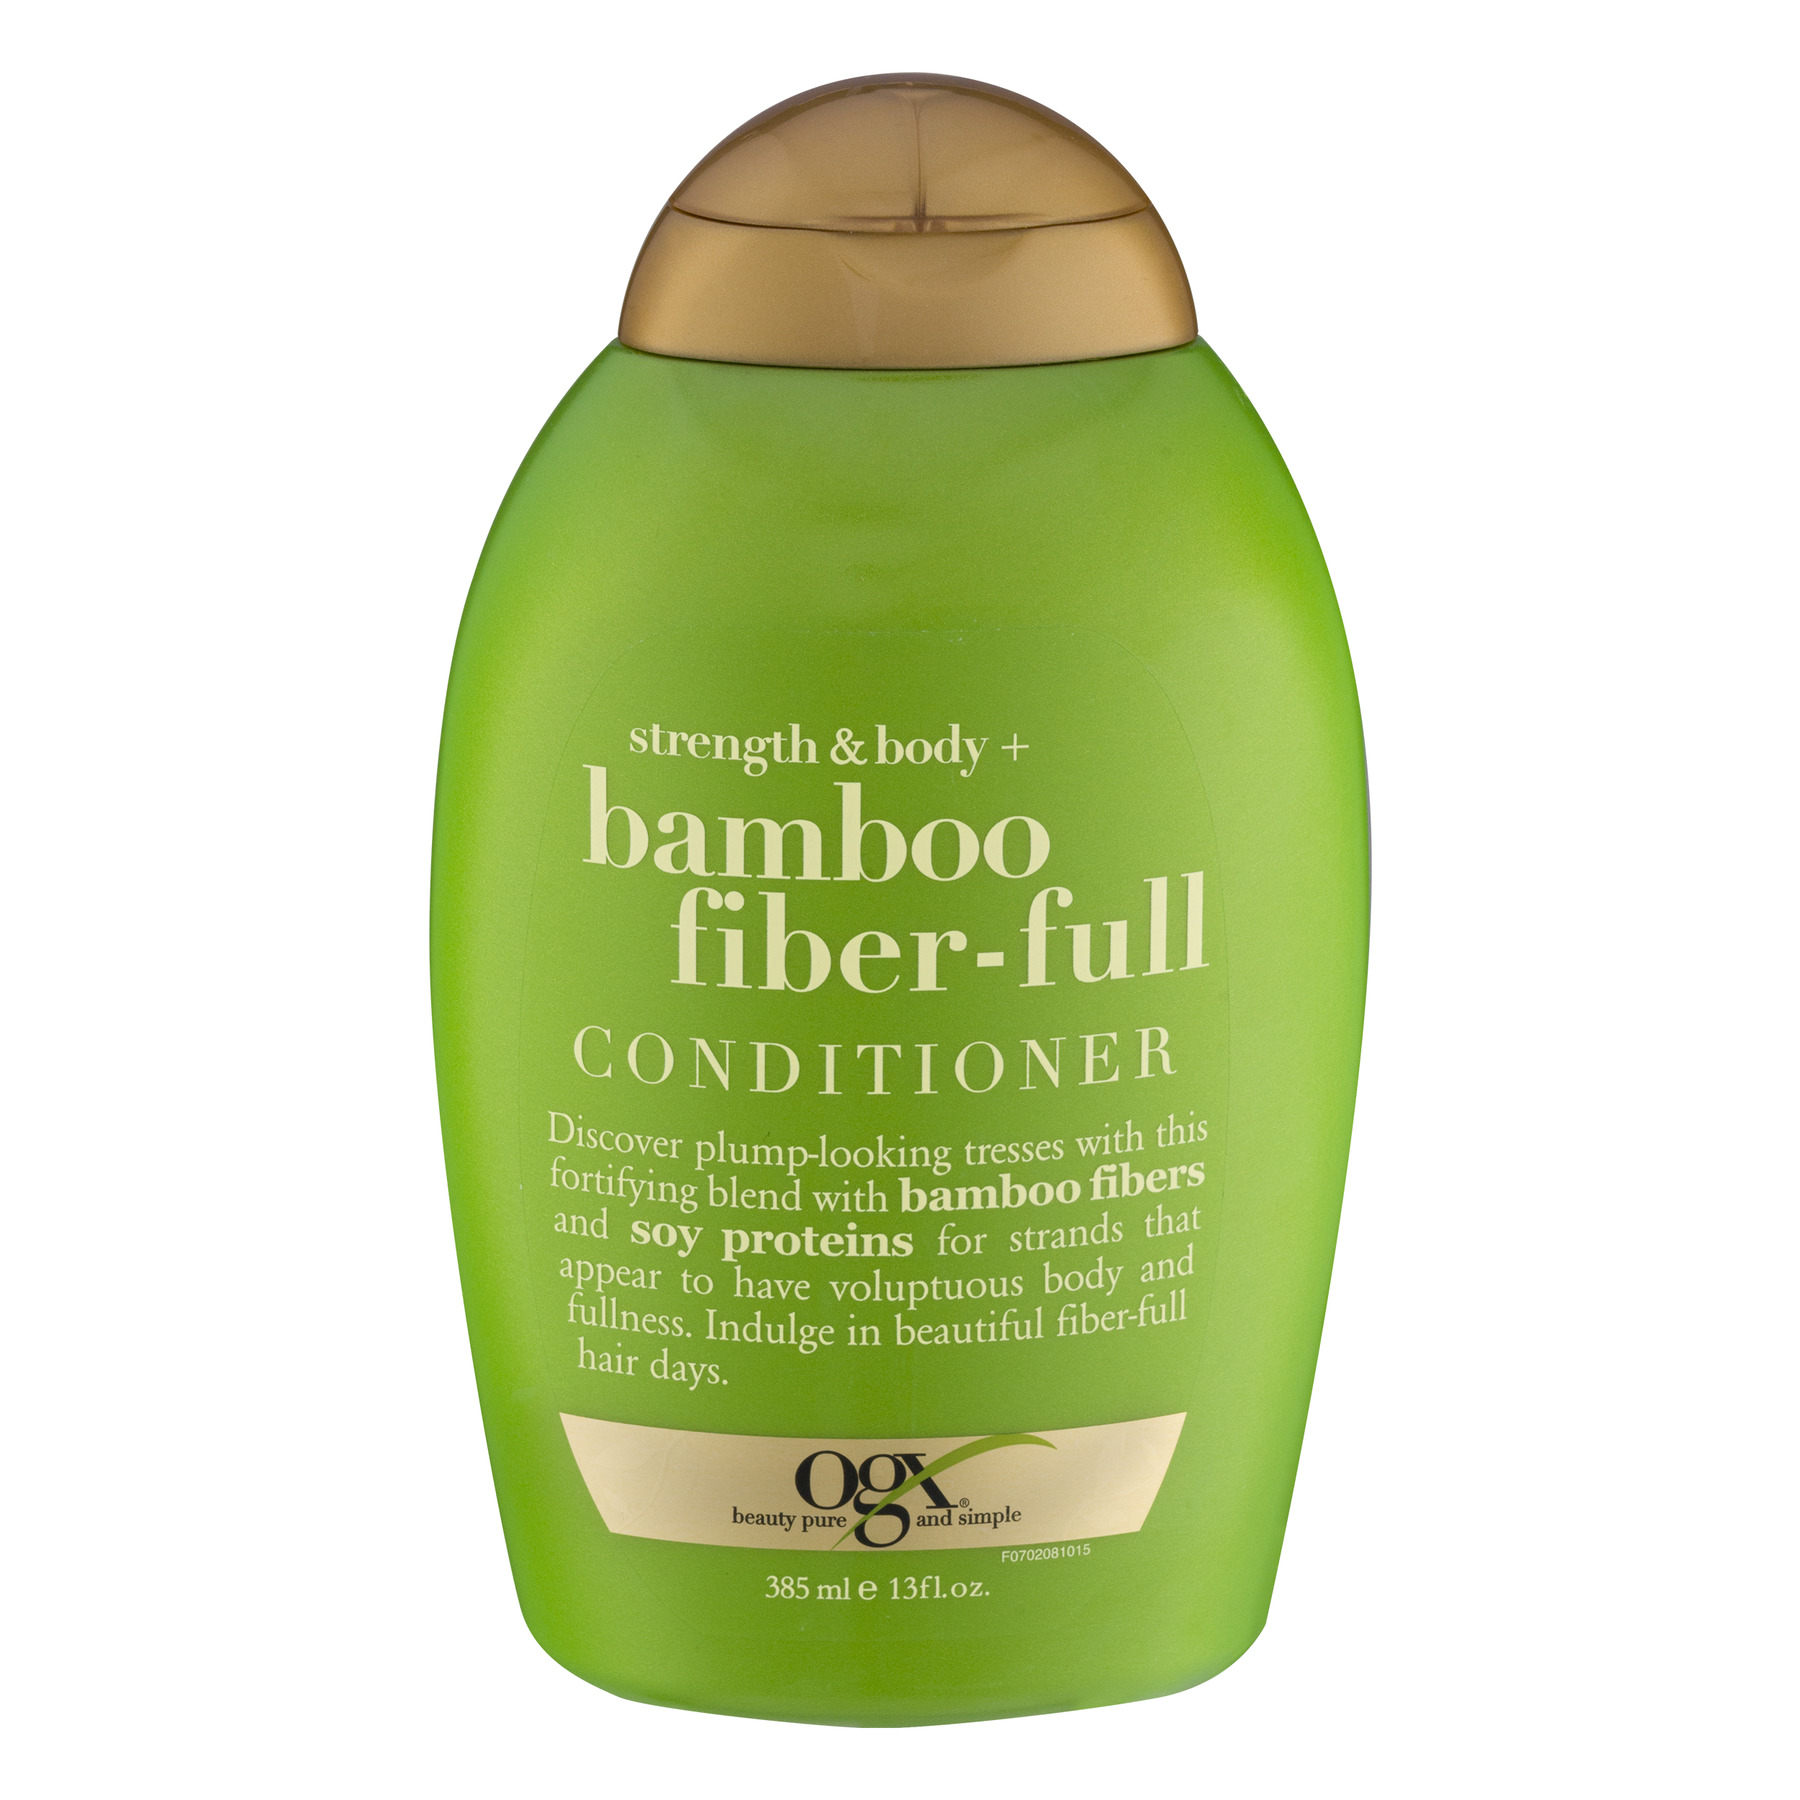 OGX Strength & Body + Bamboo Fiber-Full Conditioner, 13.0 FL oz